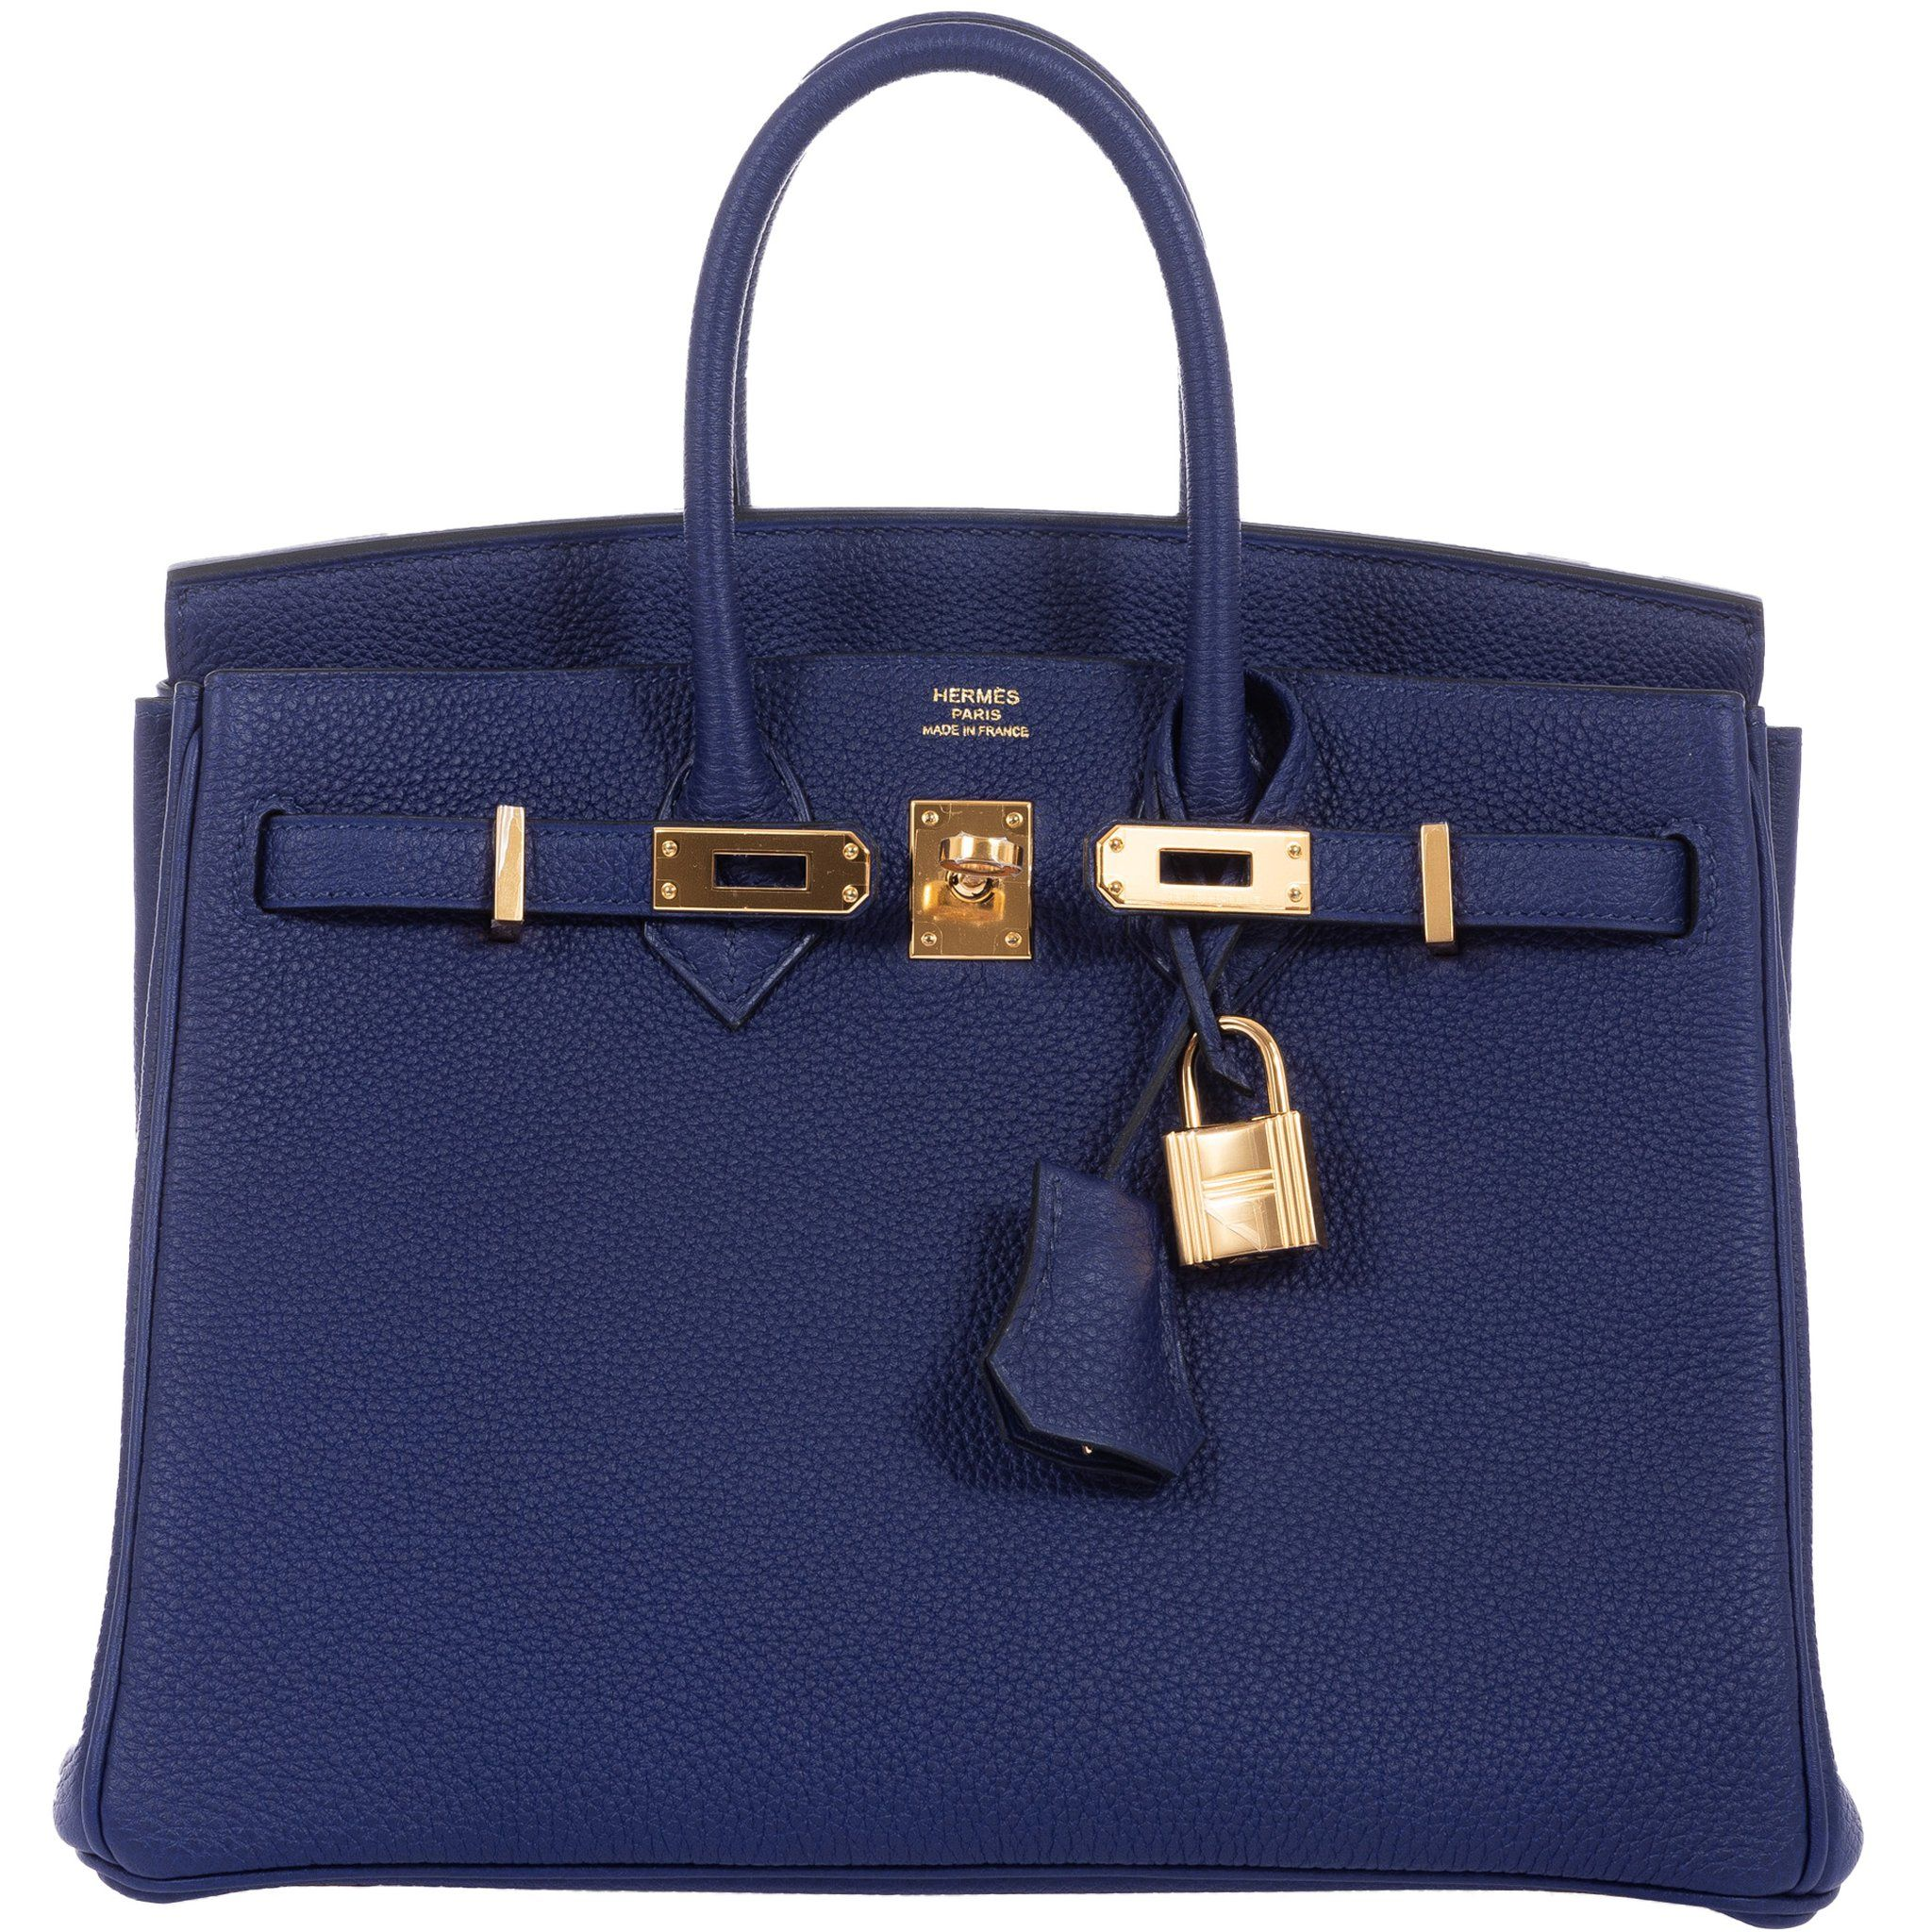 341e445ae098f Hermes Birkin 25 Blue Encre (Ink) Togo Gold Hardware in 2019